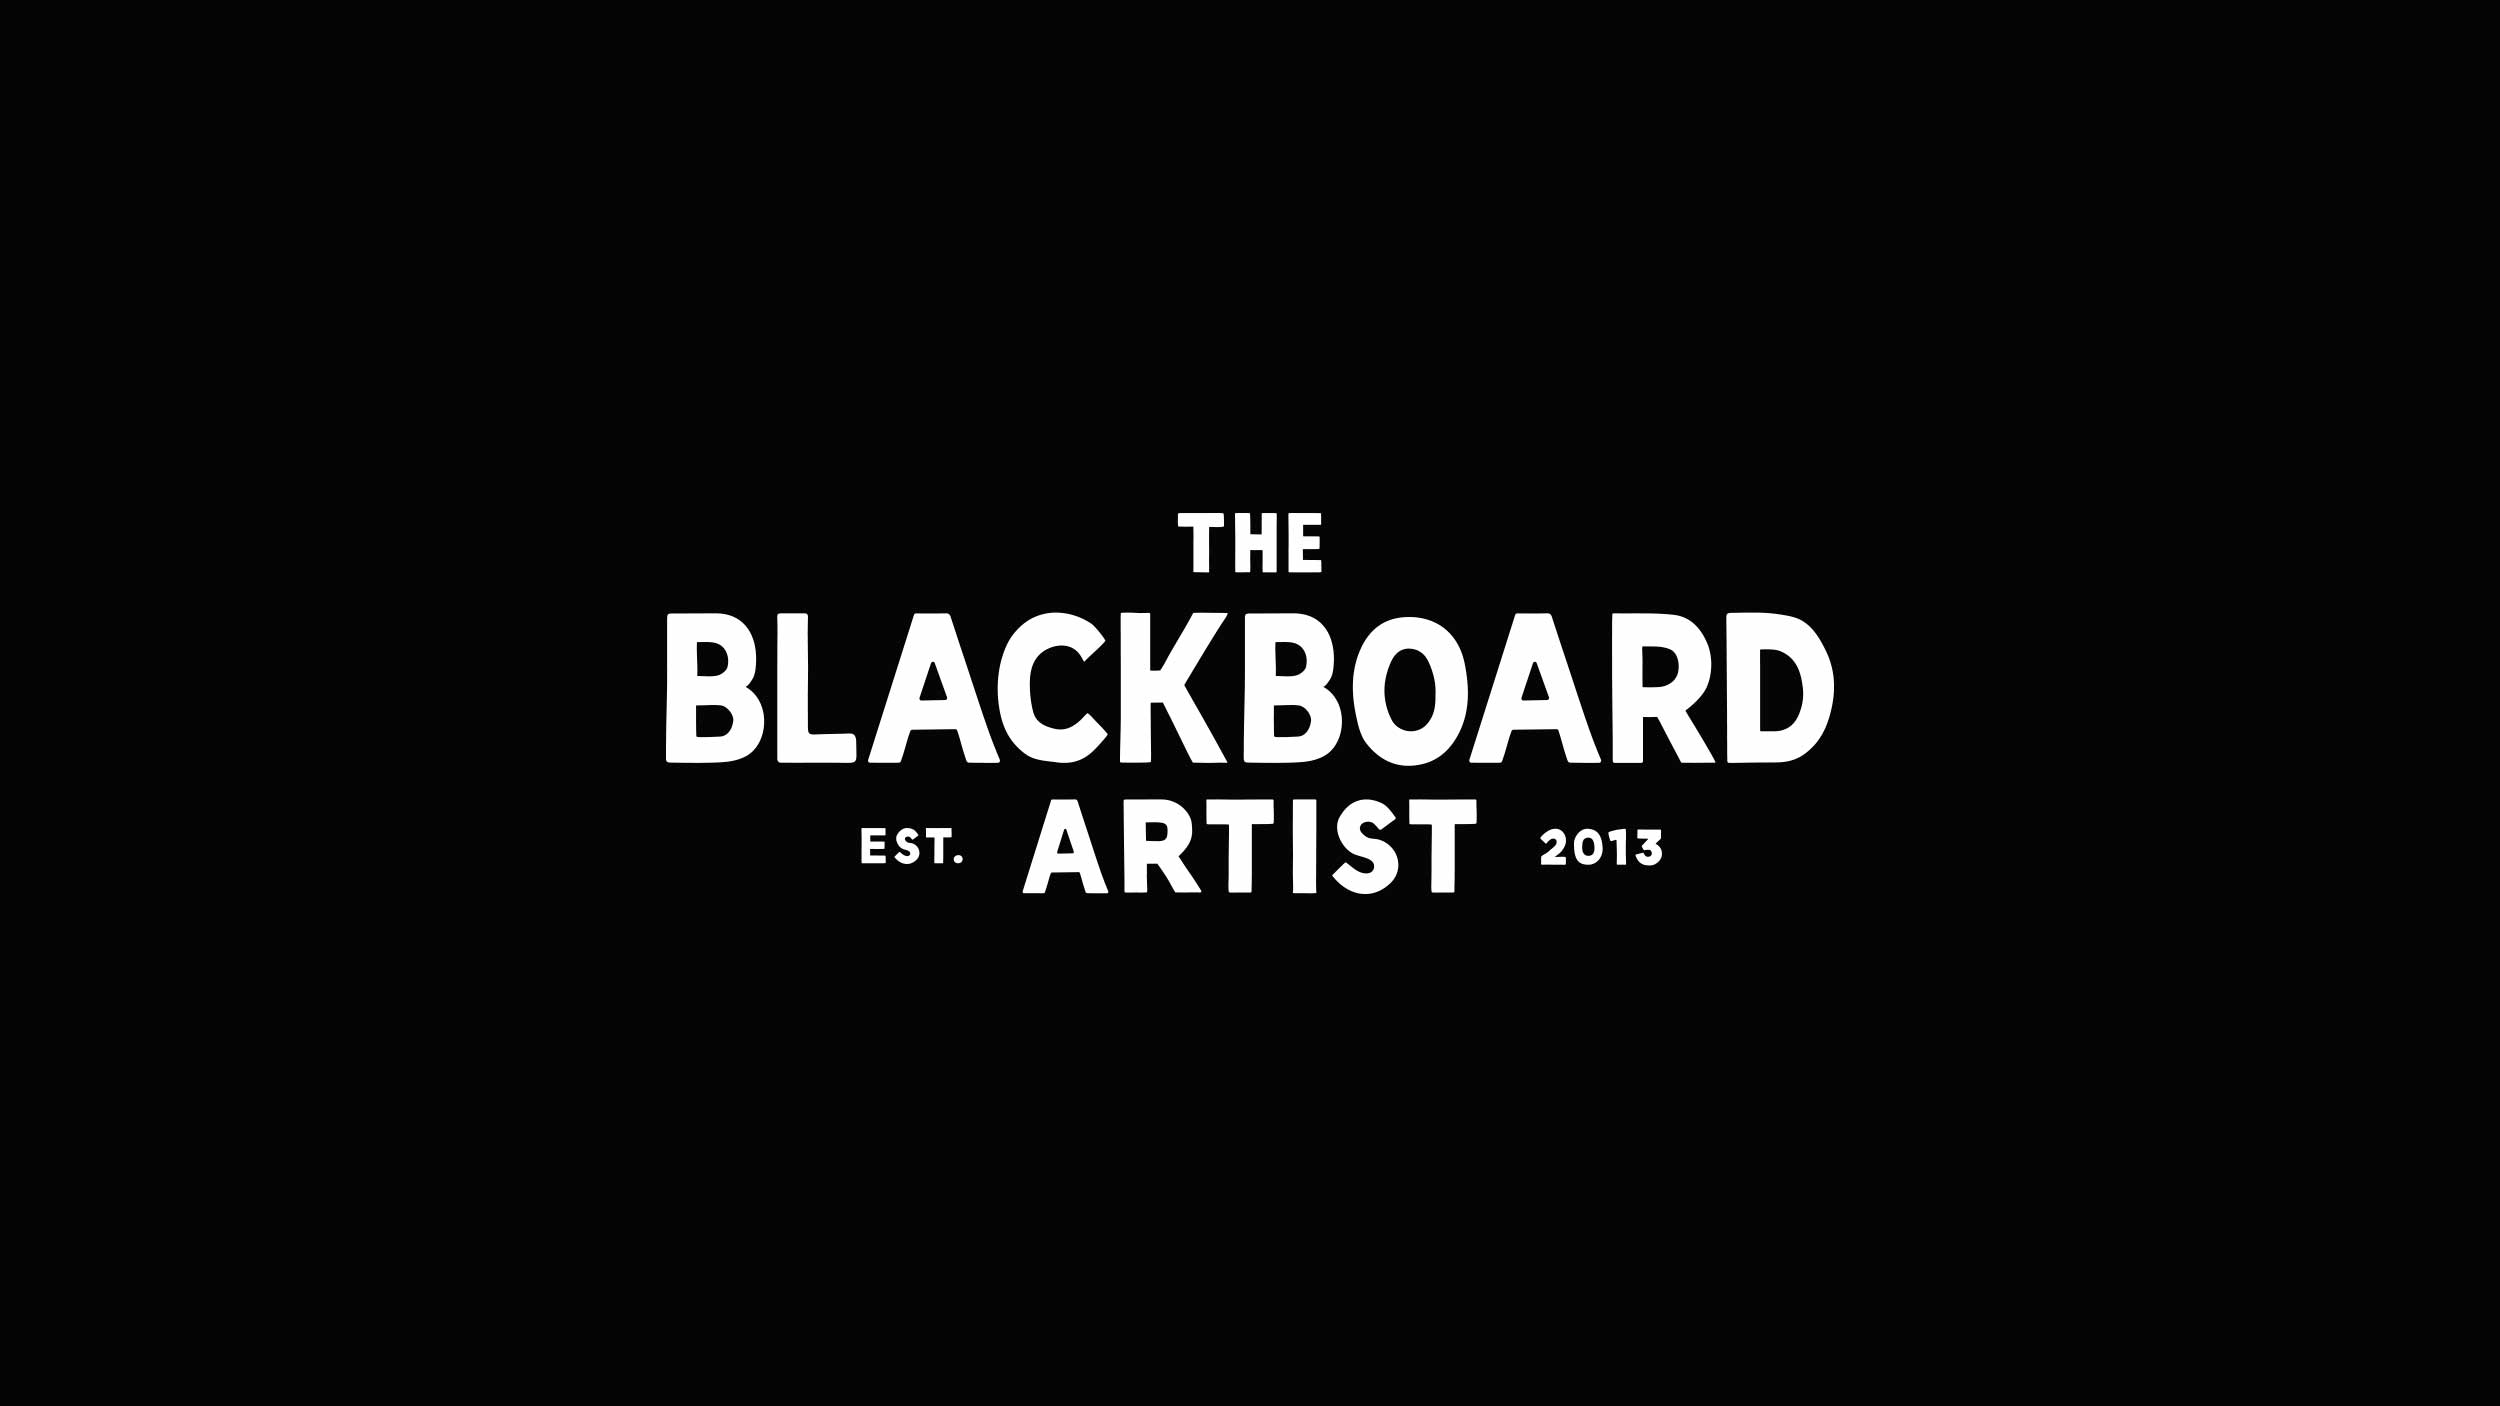 London Design Agency Boldly Creates Brand for The Blackboard Artist